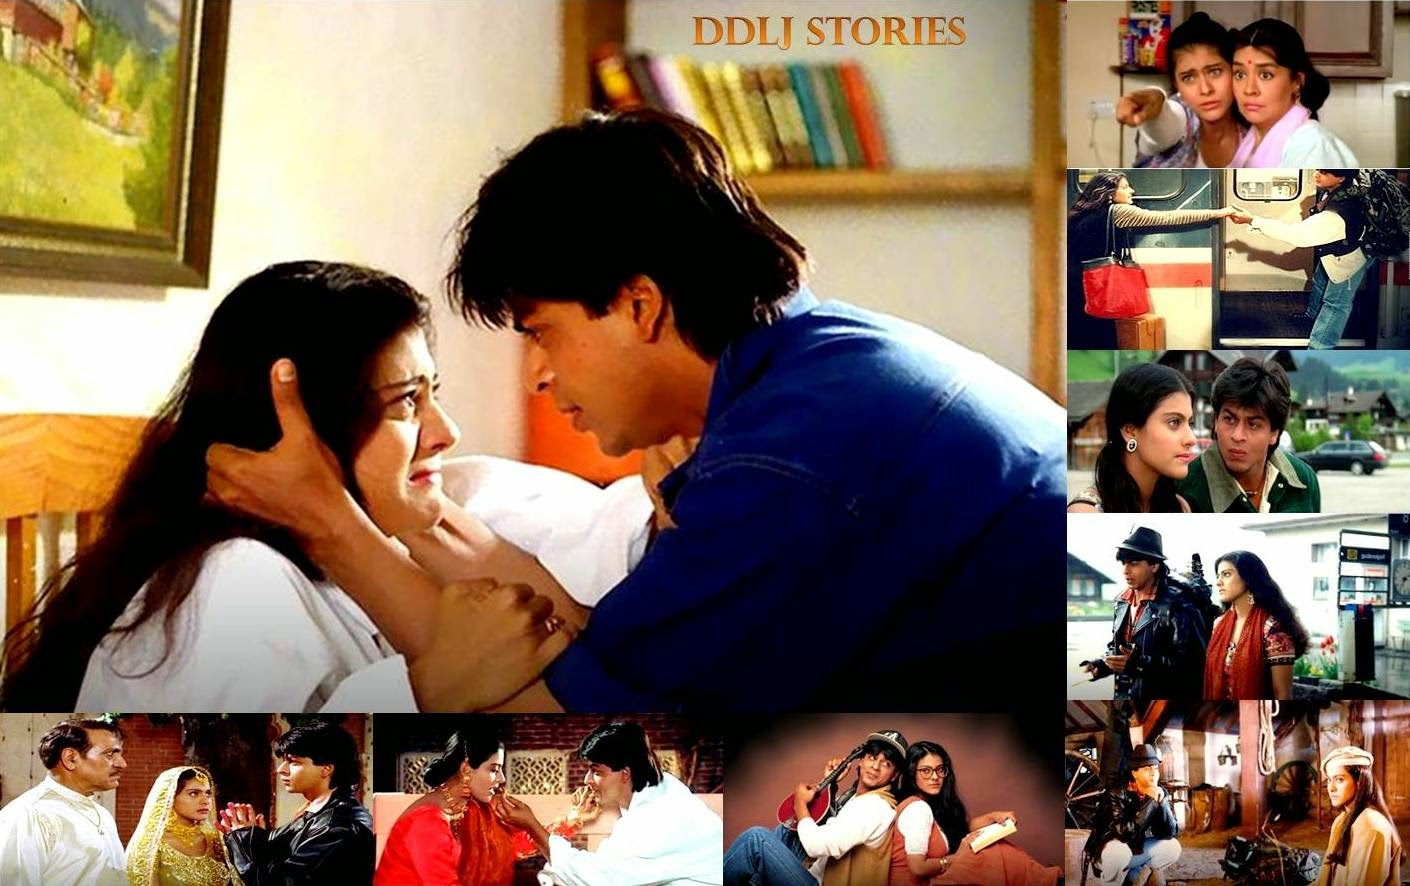 Shahrukh Khan Kajol stills of Dilwale Dulhania le Jayenge and behind the scene stories